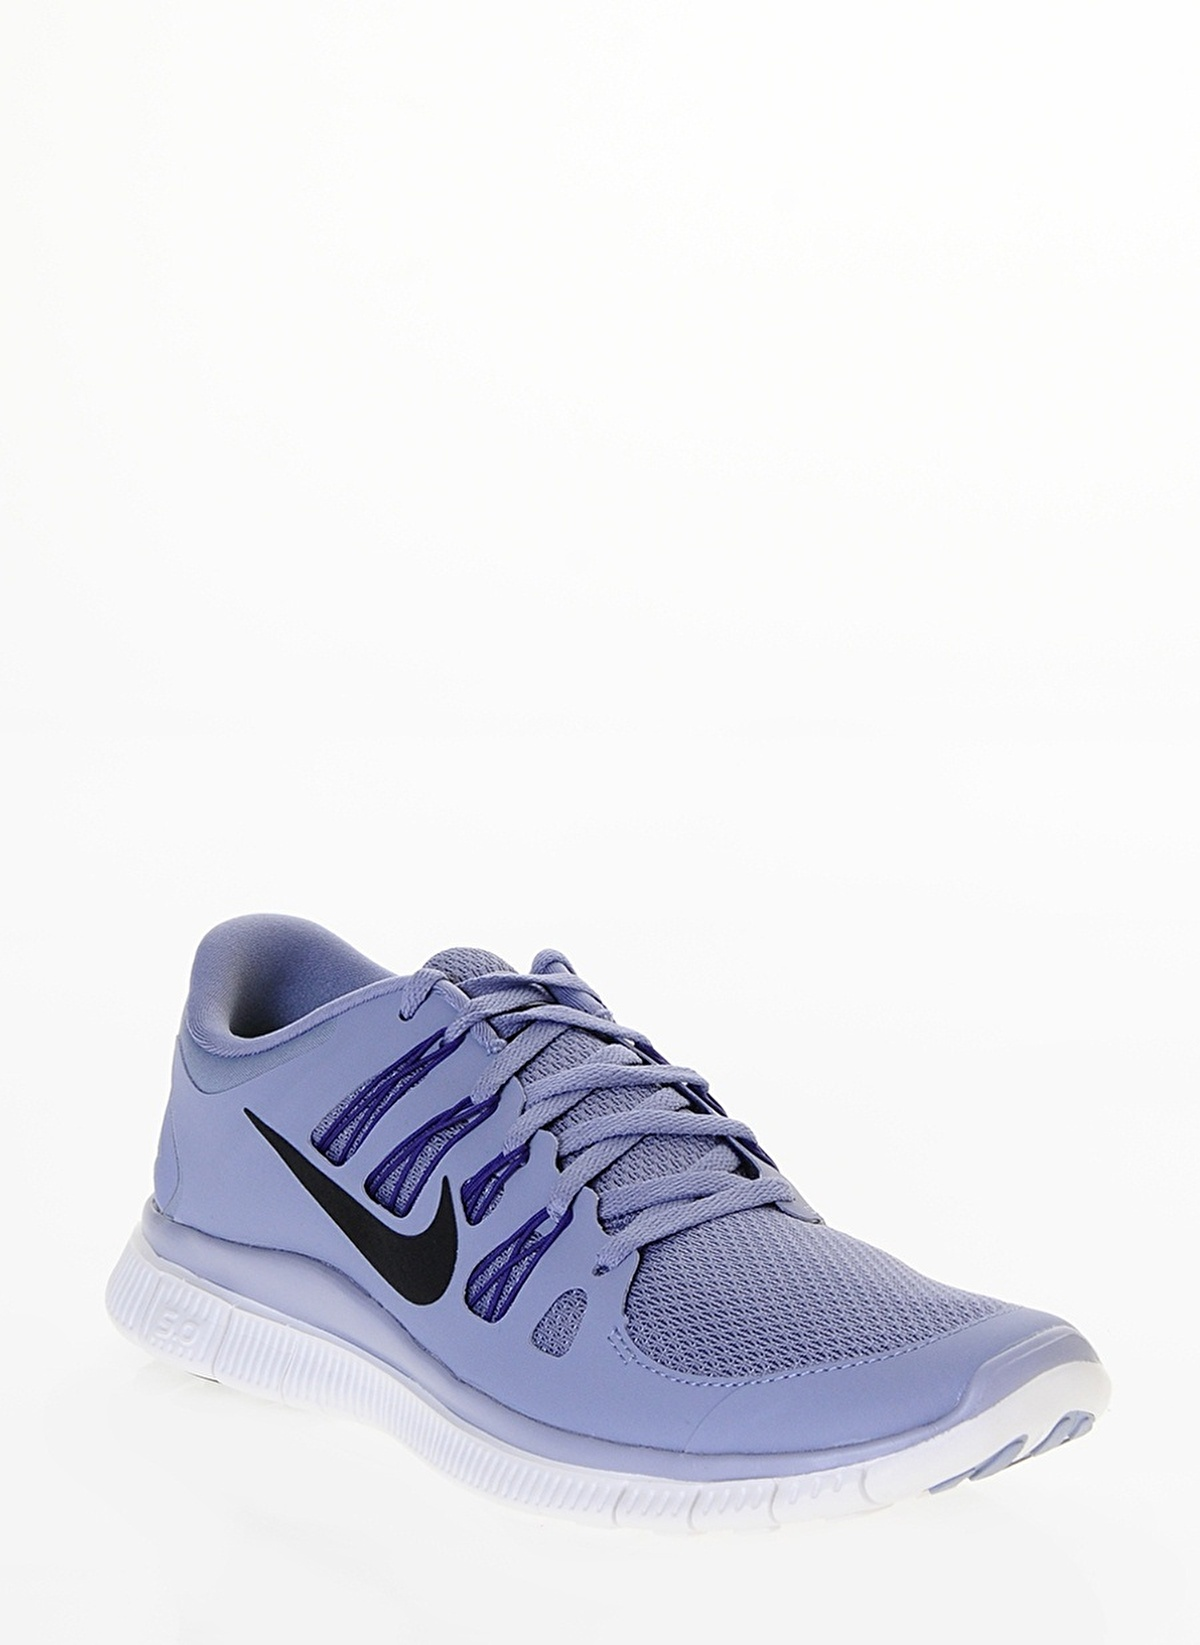 f2114a80d46577 ... coupon for nike nike free 5.0 mor 4ed69 699a6